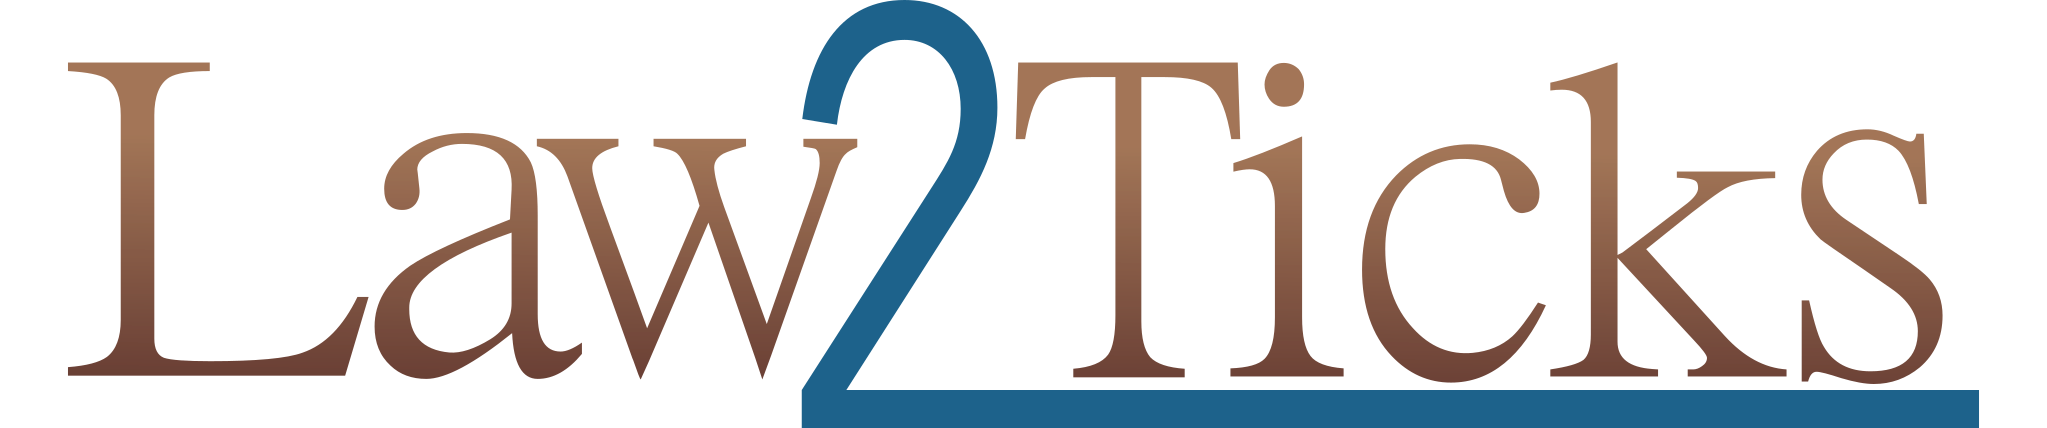 Law2Ticks Logo